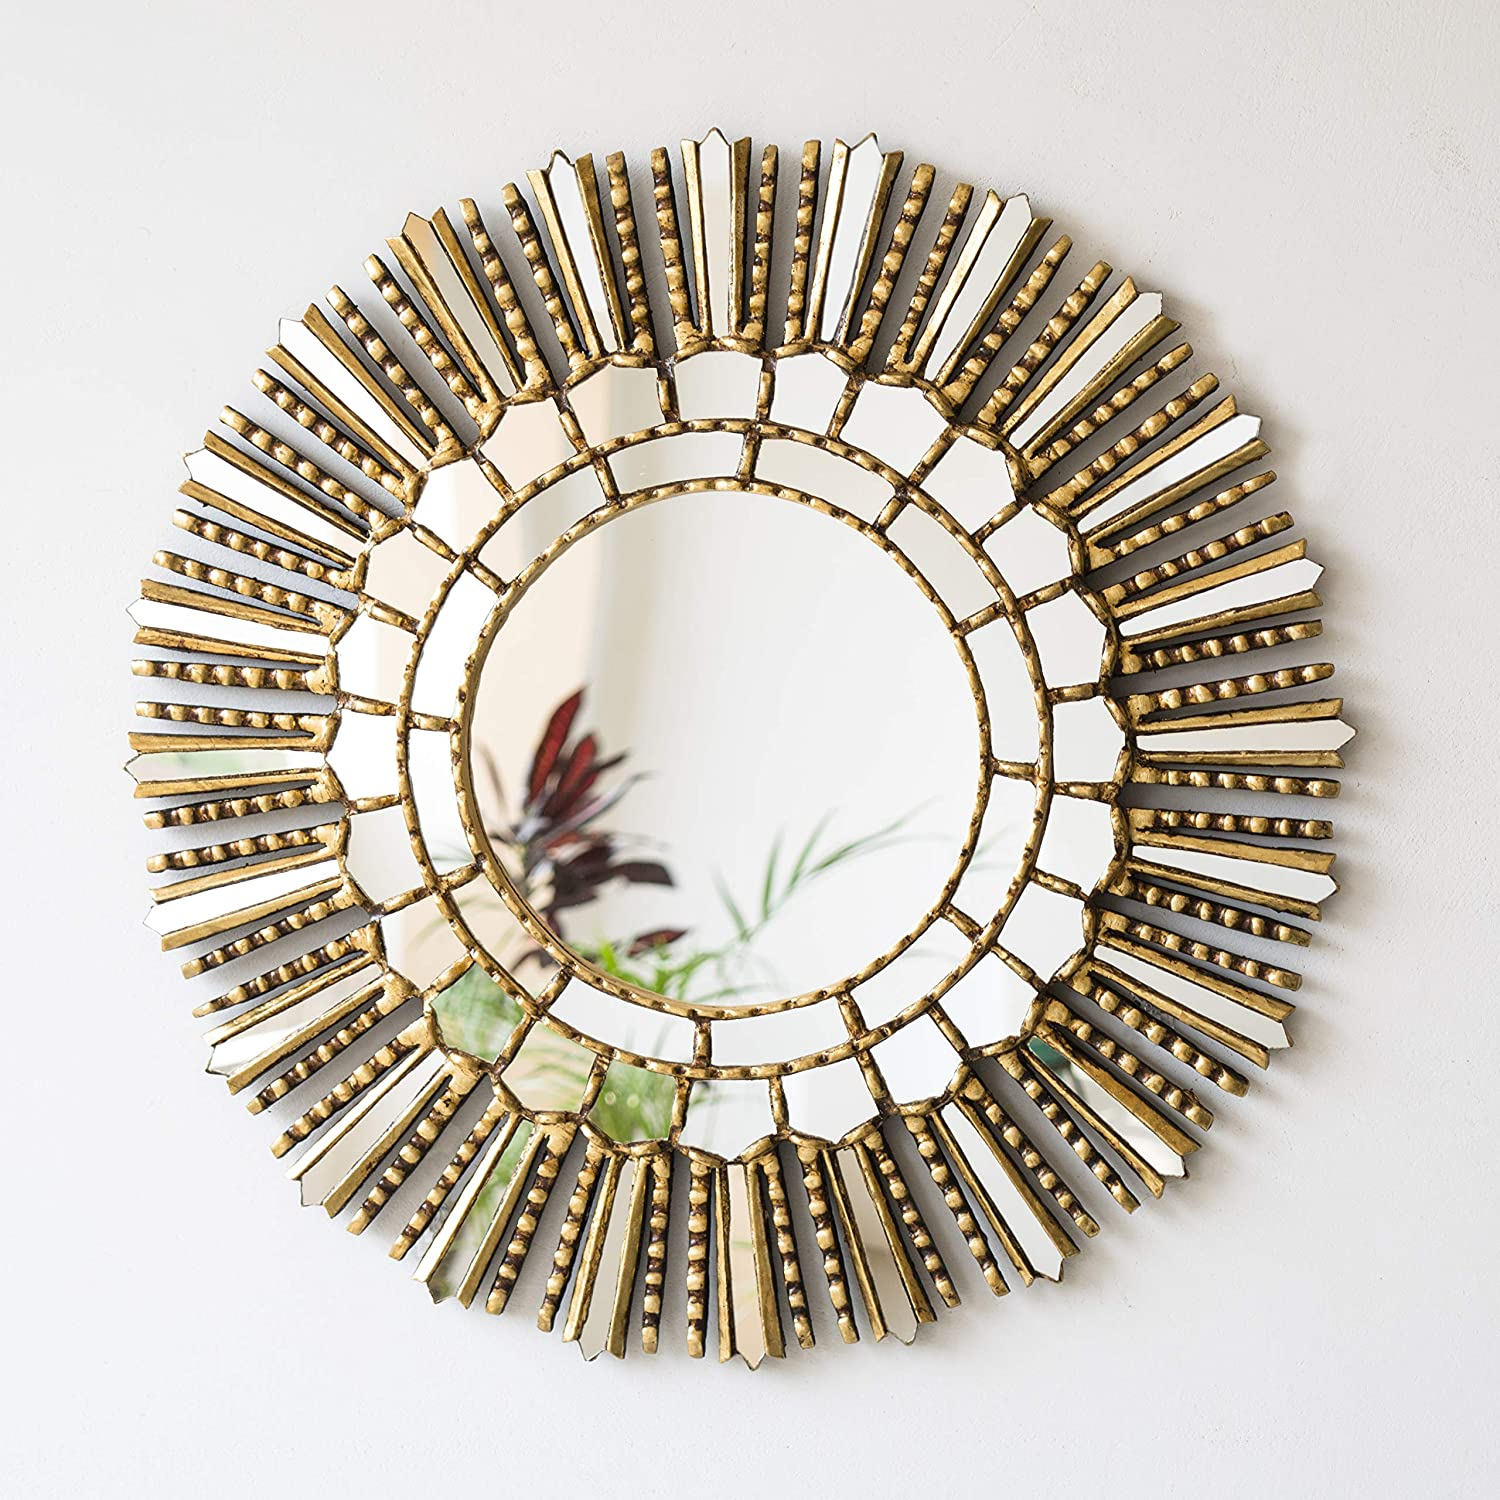 Amazon Com Decorative Round Sunburst Mirror Wall Decor 23 6in Peruvian Wall Accent Mirror Painting On Glass Hanging Wall Mirror For Living Room Gold Sun Handmade